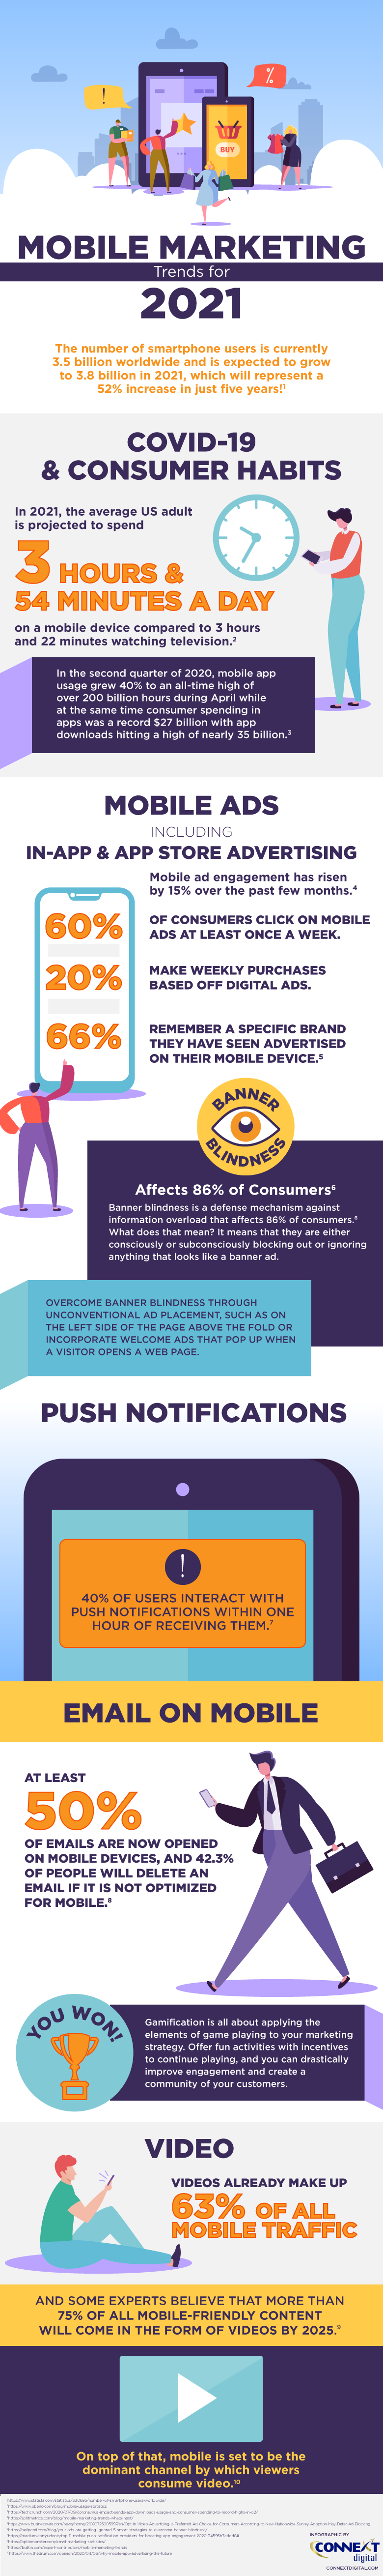 CNX21-02-Mobile Trends 2021 Infographic